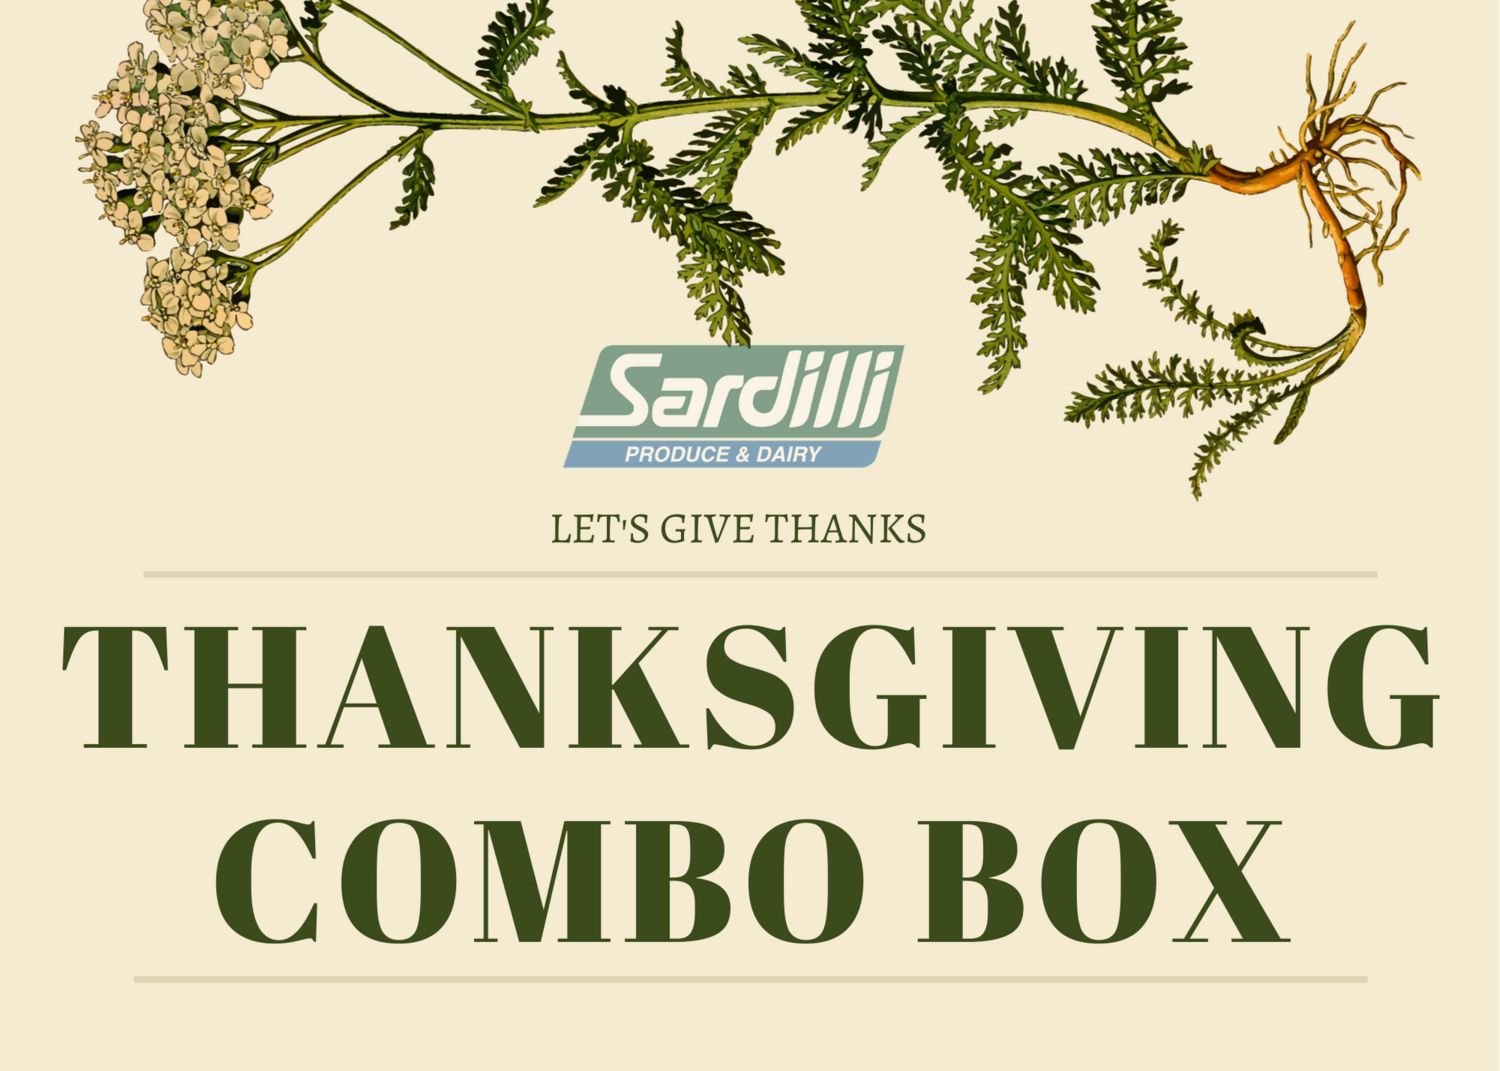 THANKSGIVING COMBO BOX - ONLY AVAILABLE TUESDAY NOV 24th -This box has all the things you need for your Thanksgiving Dinner.